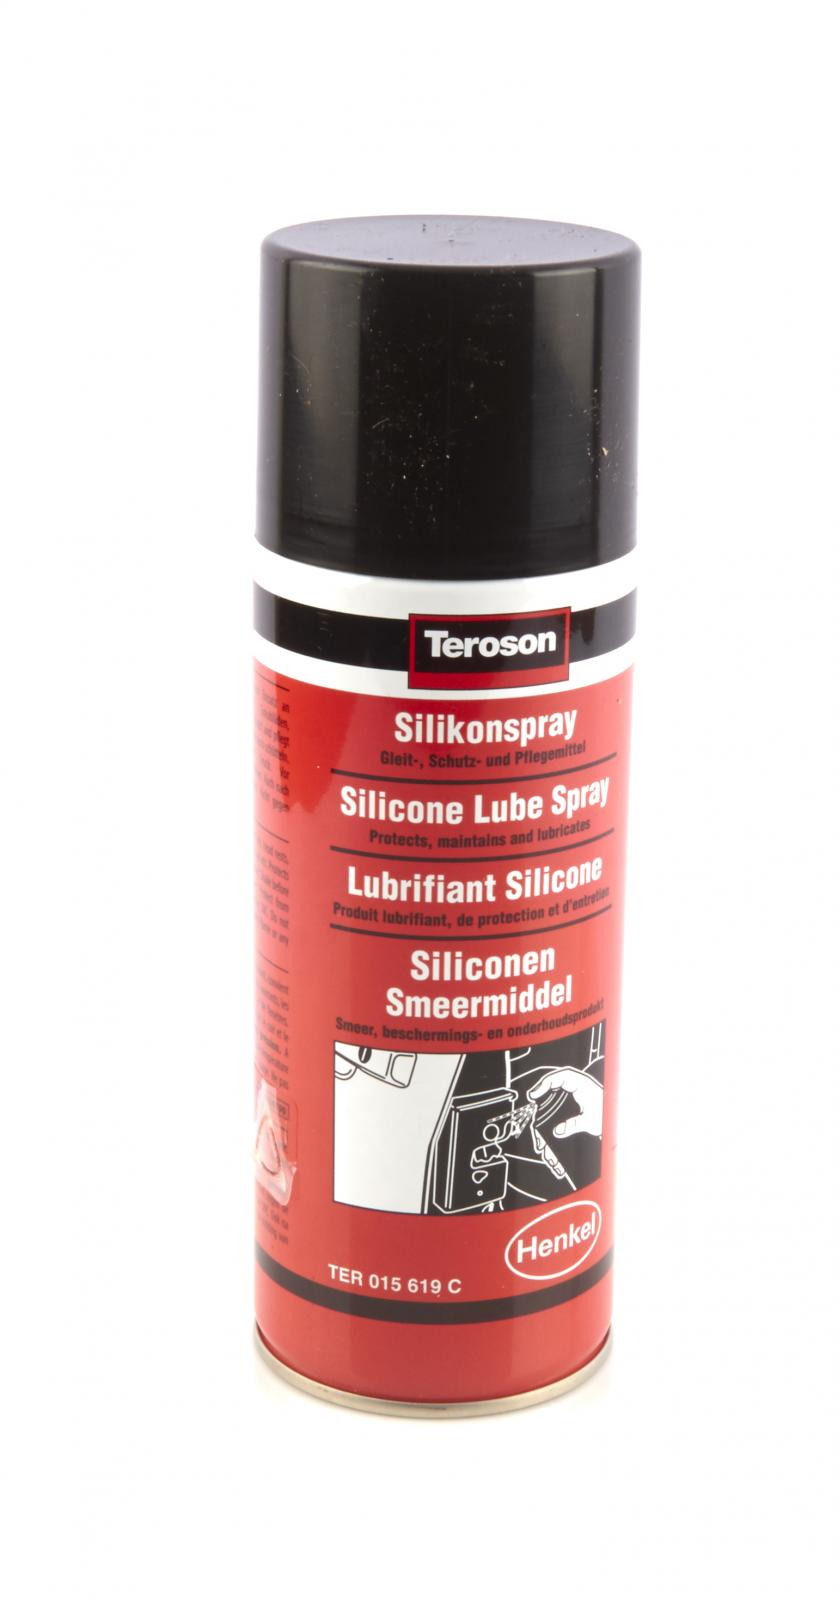 loctite teroson 400ml silikon spray 232378 silikonspray ebay. Black Bedroom Furniture Sets. Home Design Ideas